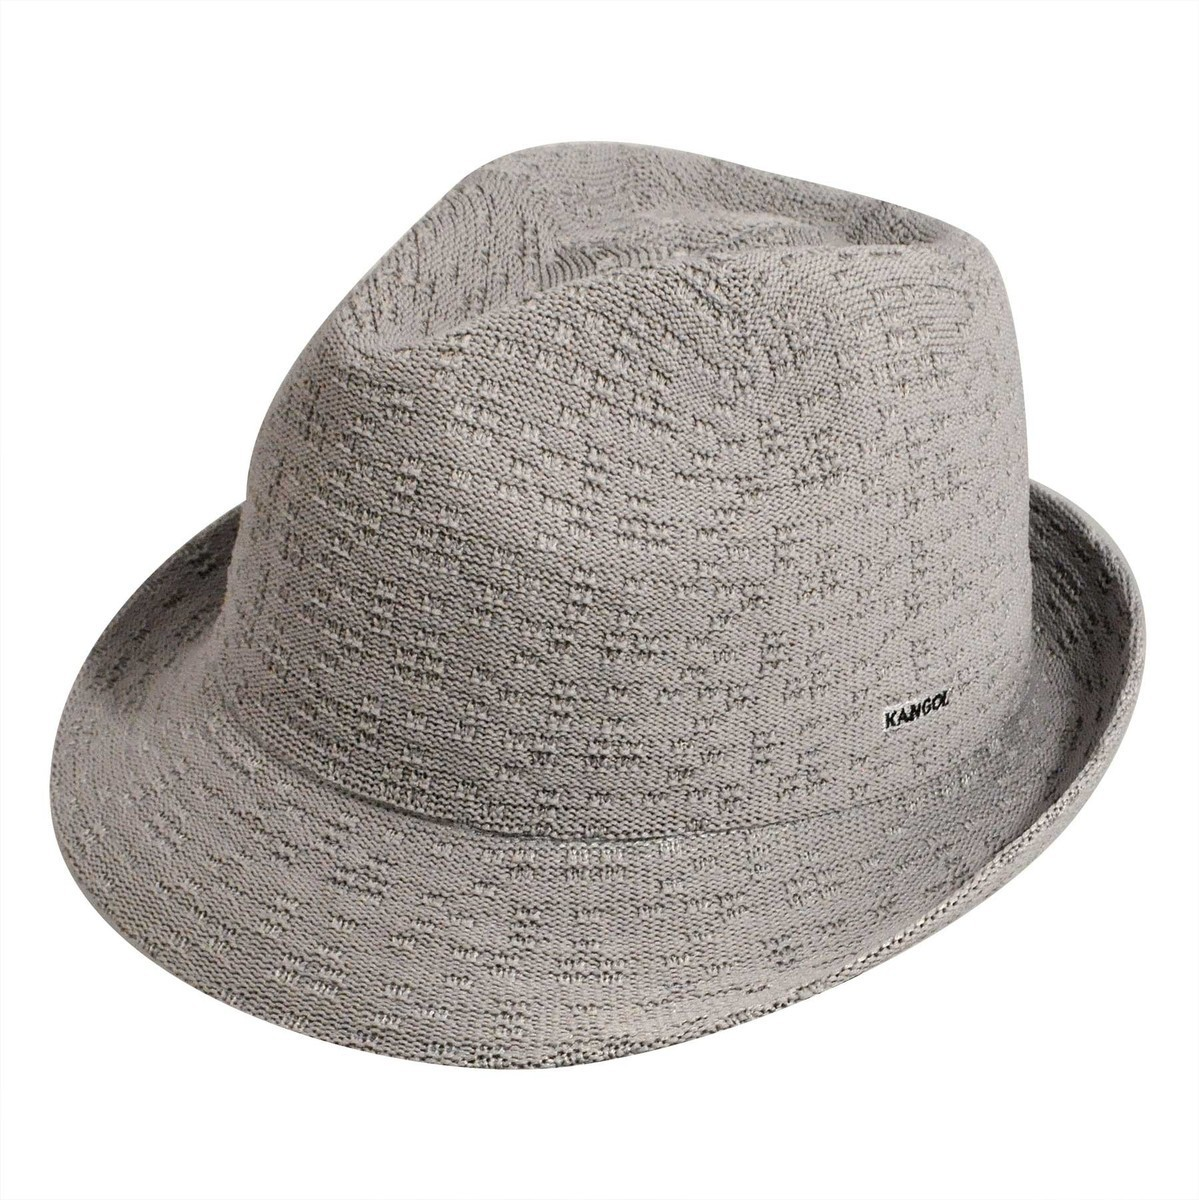 Kangol カンゴール Braille Tex Arnold Grey Trilby 帽子 Grey